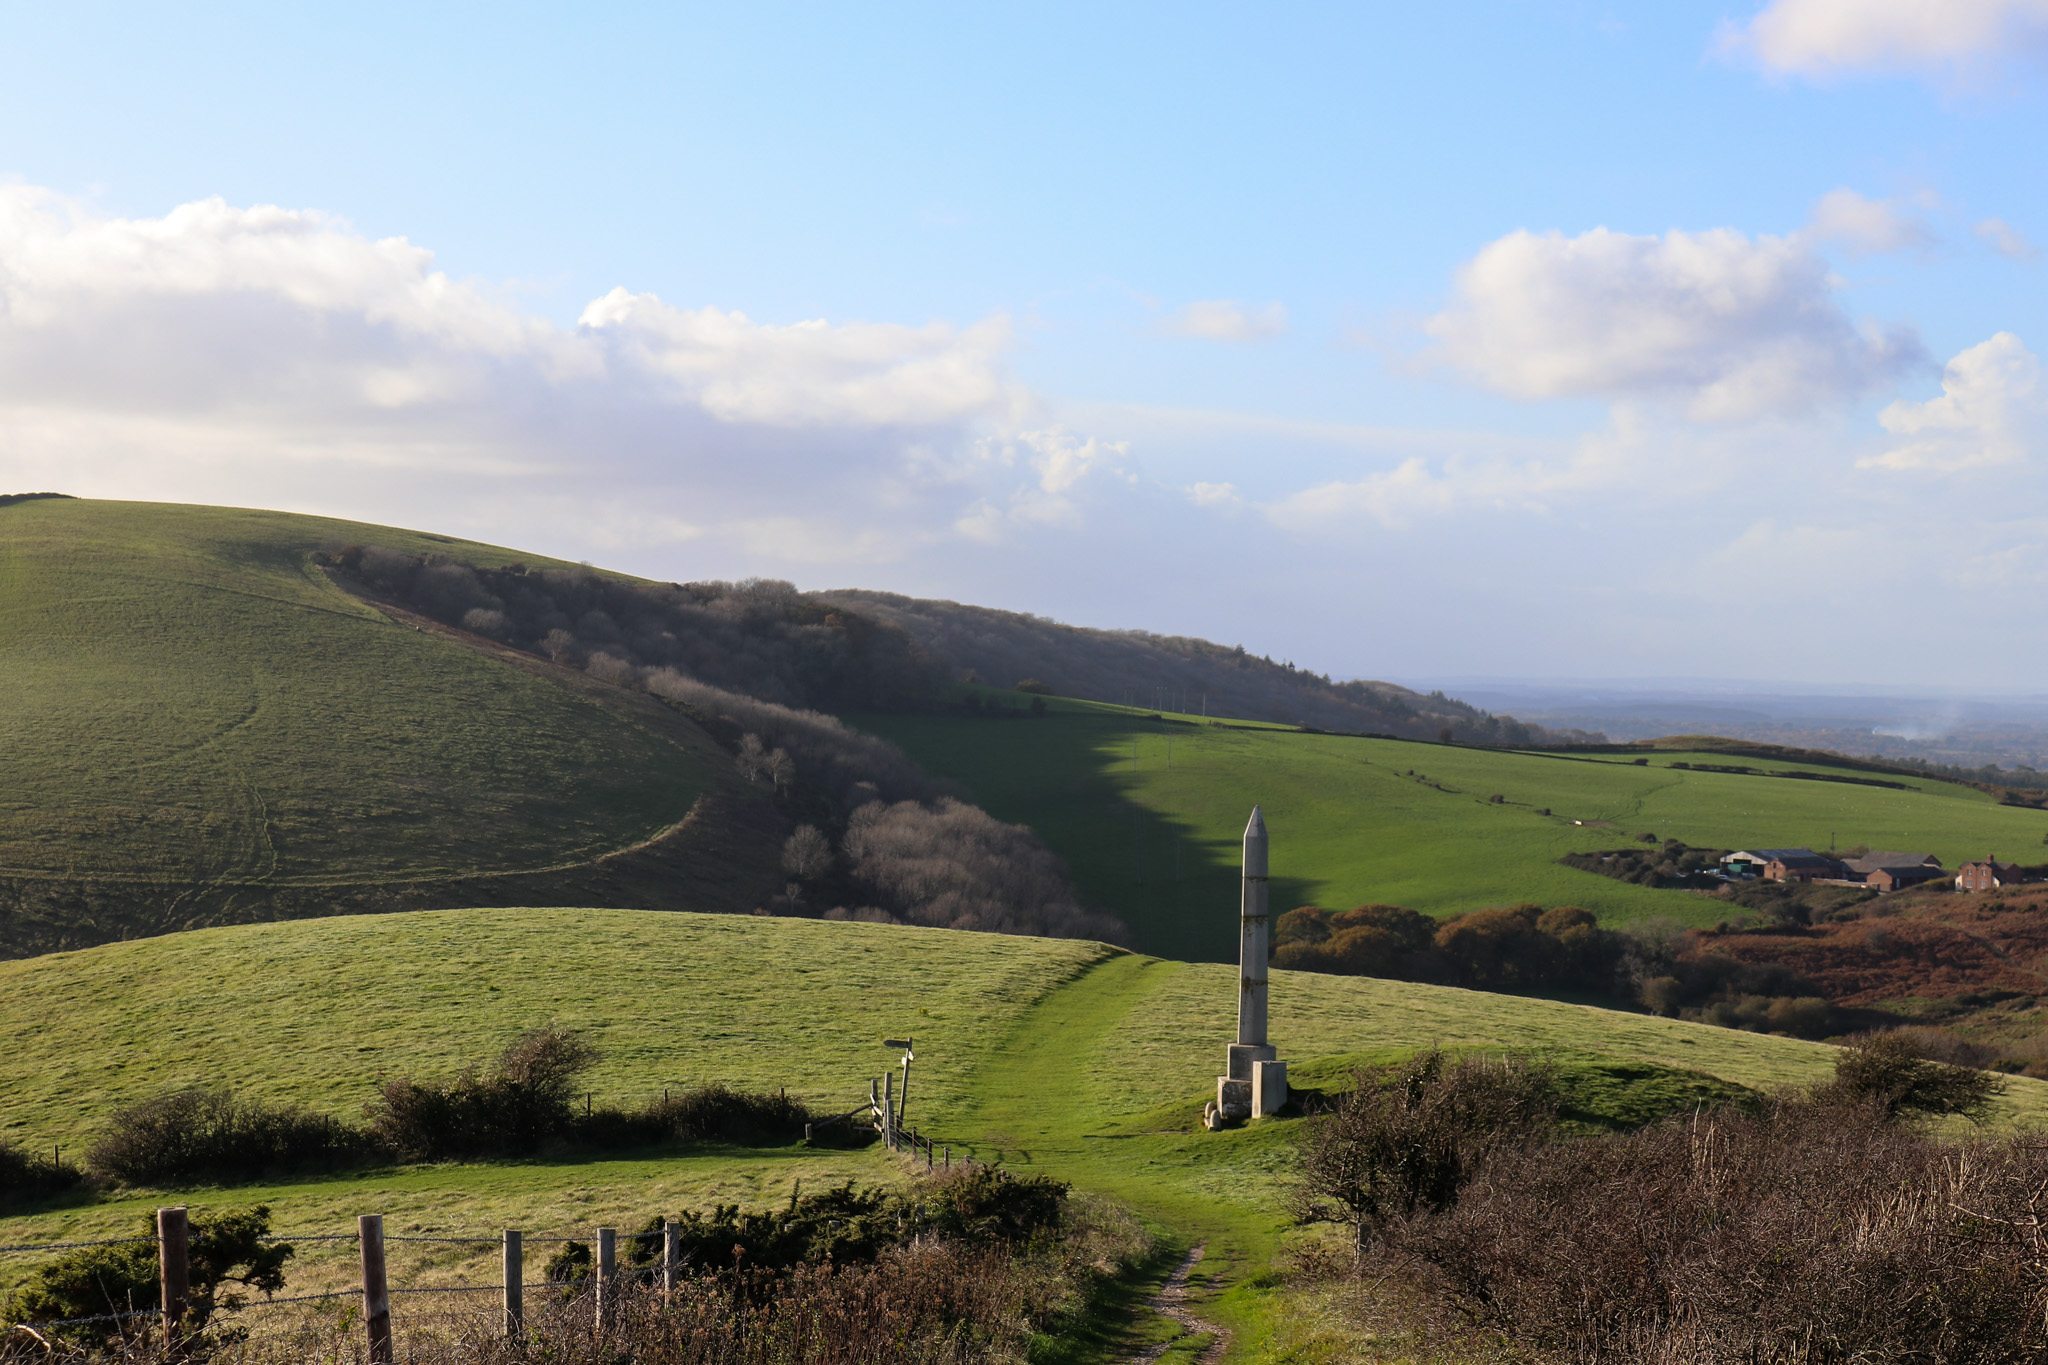 Looking back down on the Swanage obelisk from cliff path